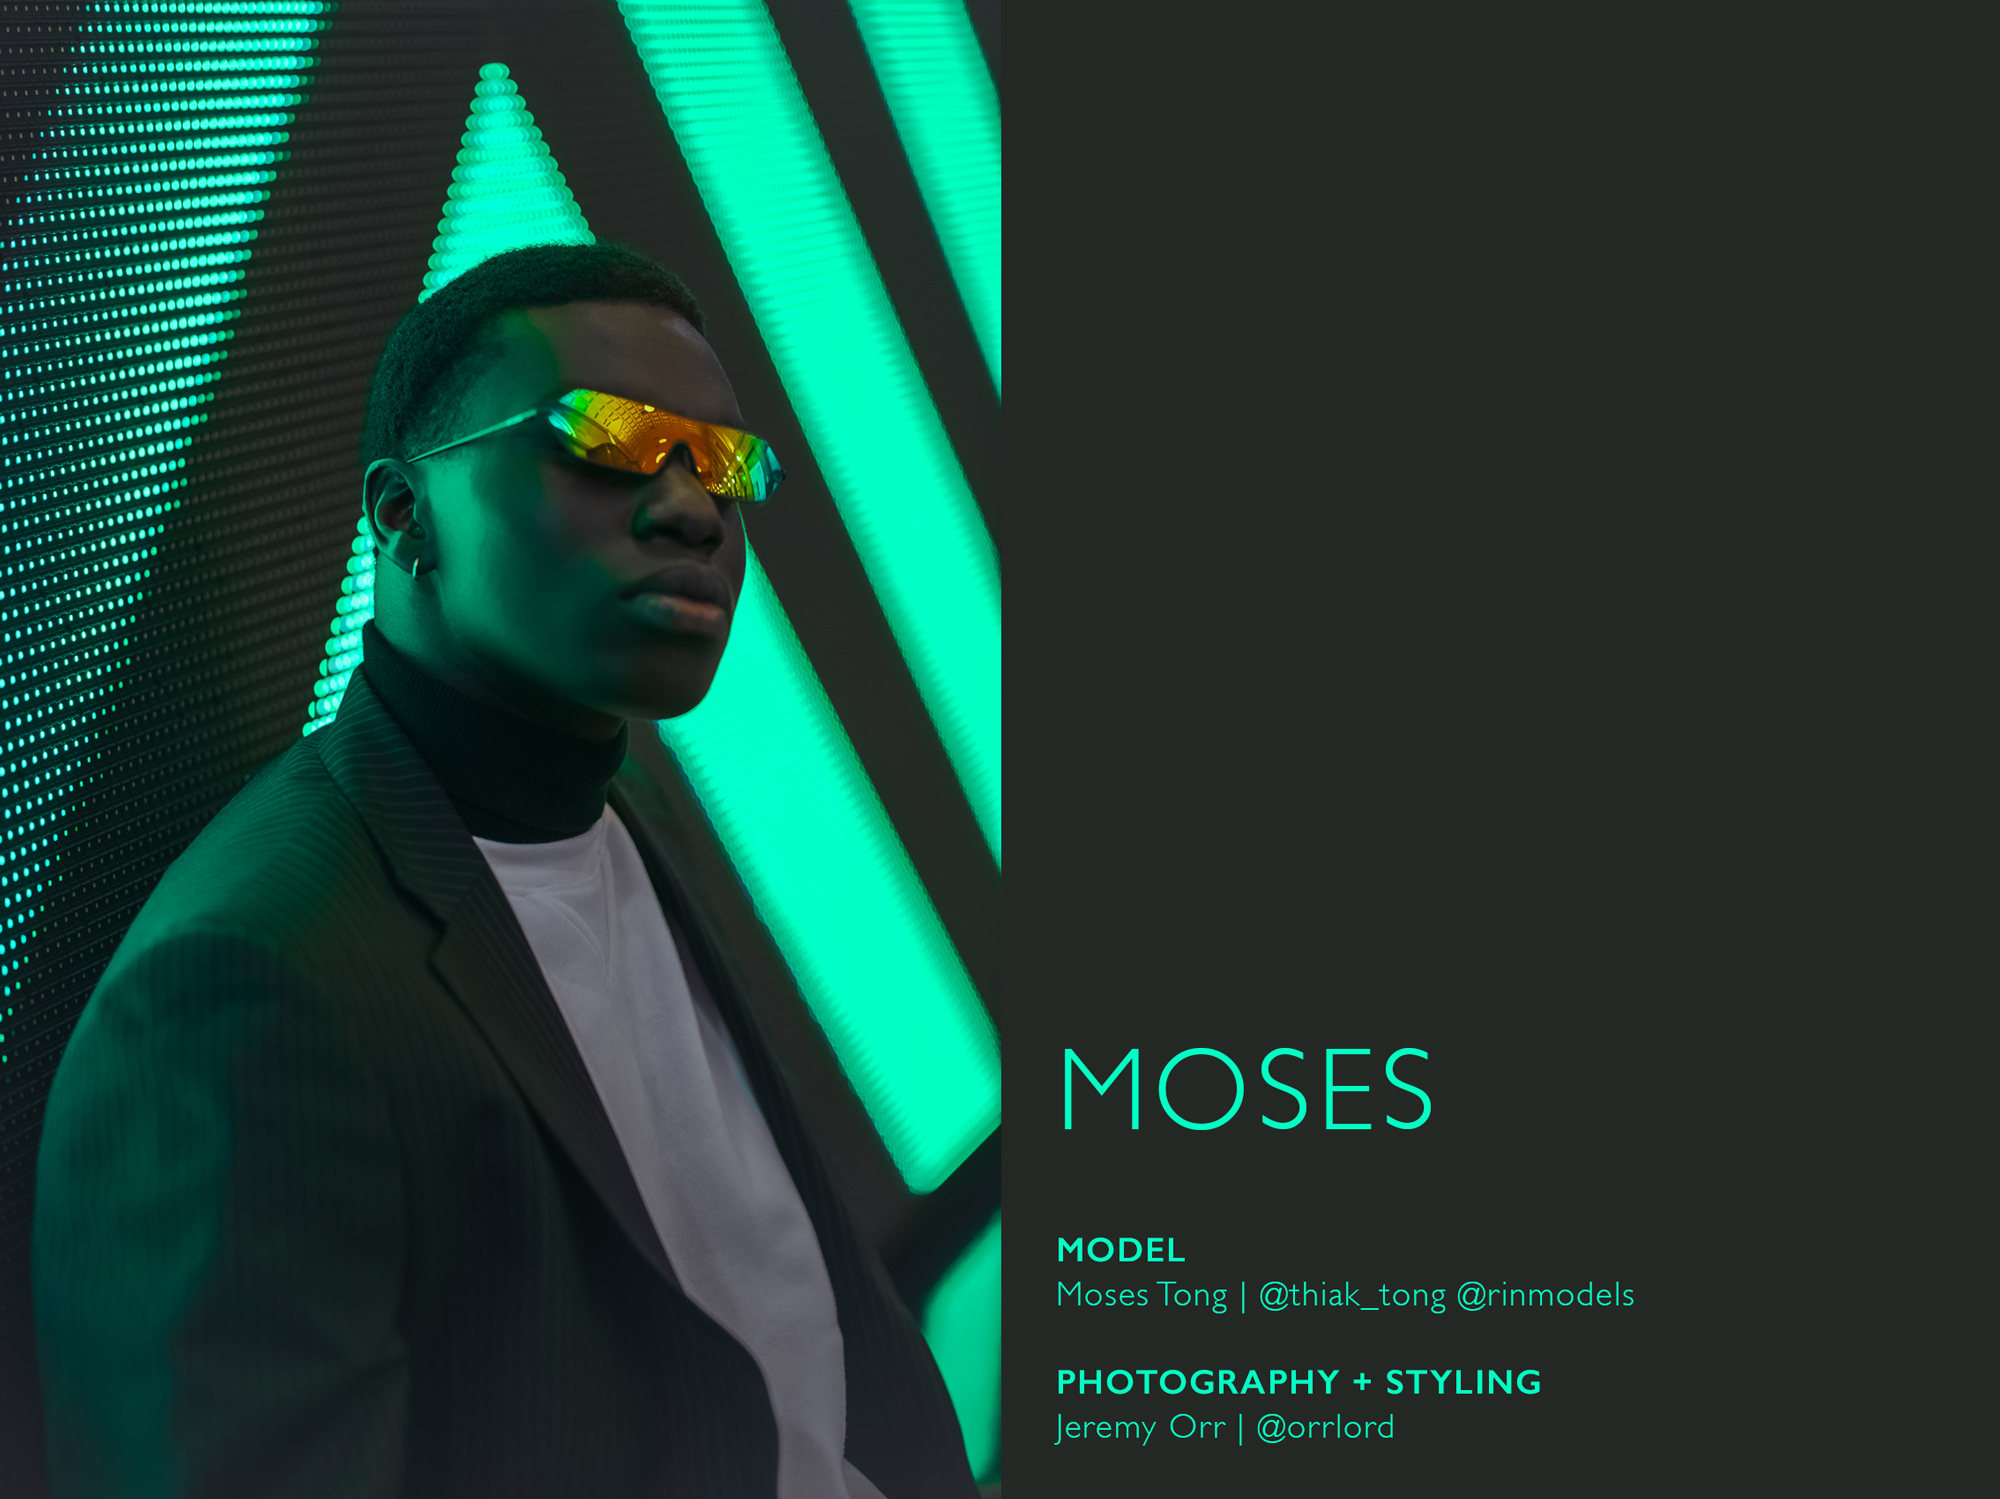 moses-byjeremyorr-cover1.jpg